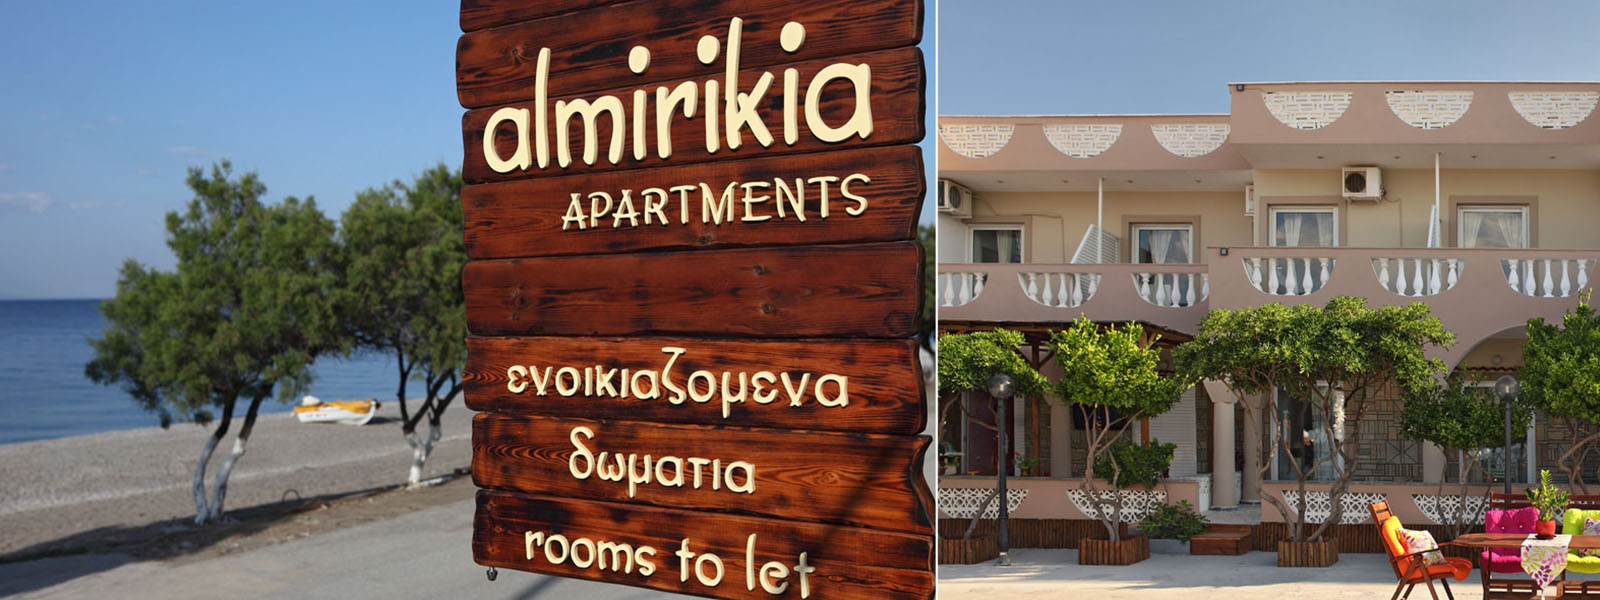 Almirikia Apartments